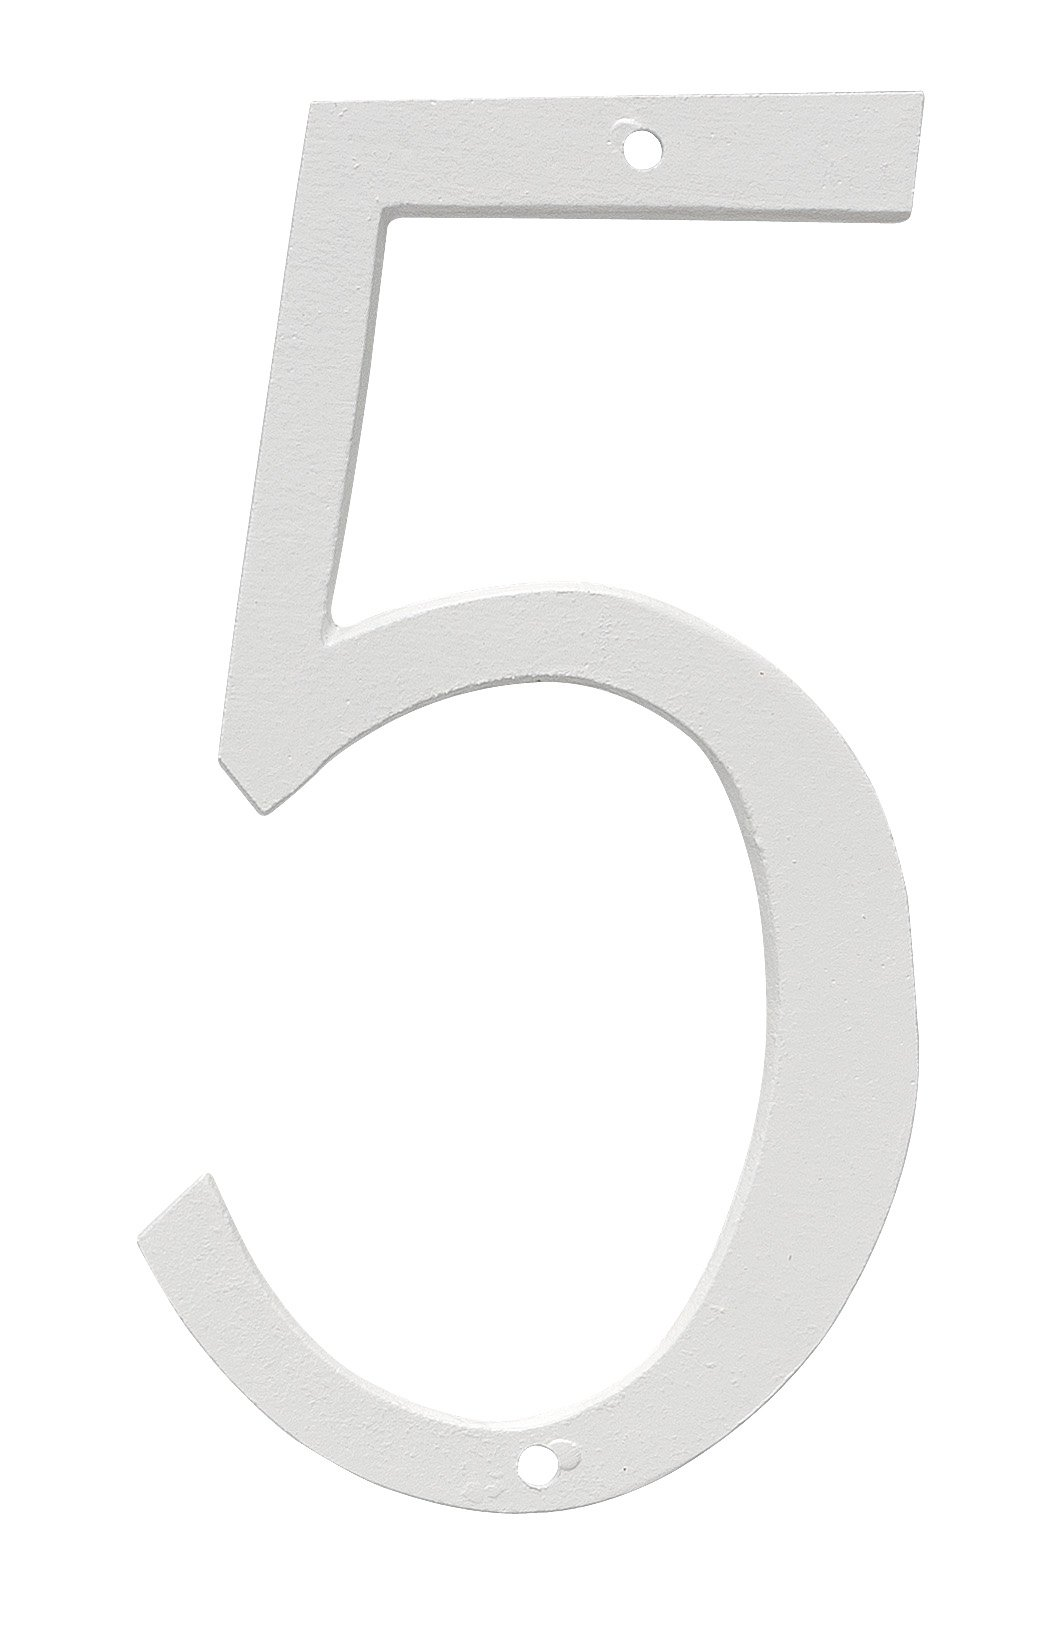 Montague Metal Products CSHN-6-5-W Aluminum House Number 5 Outdoor Plaque, Small, White